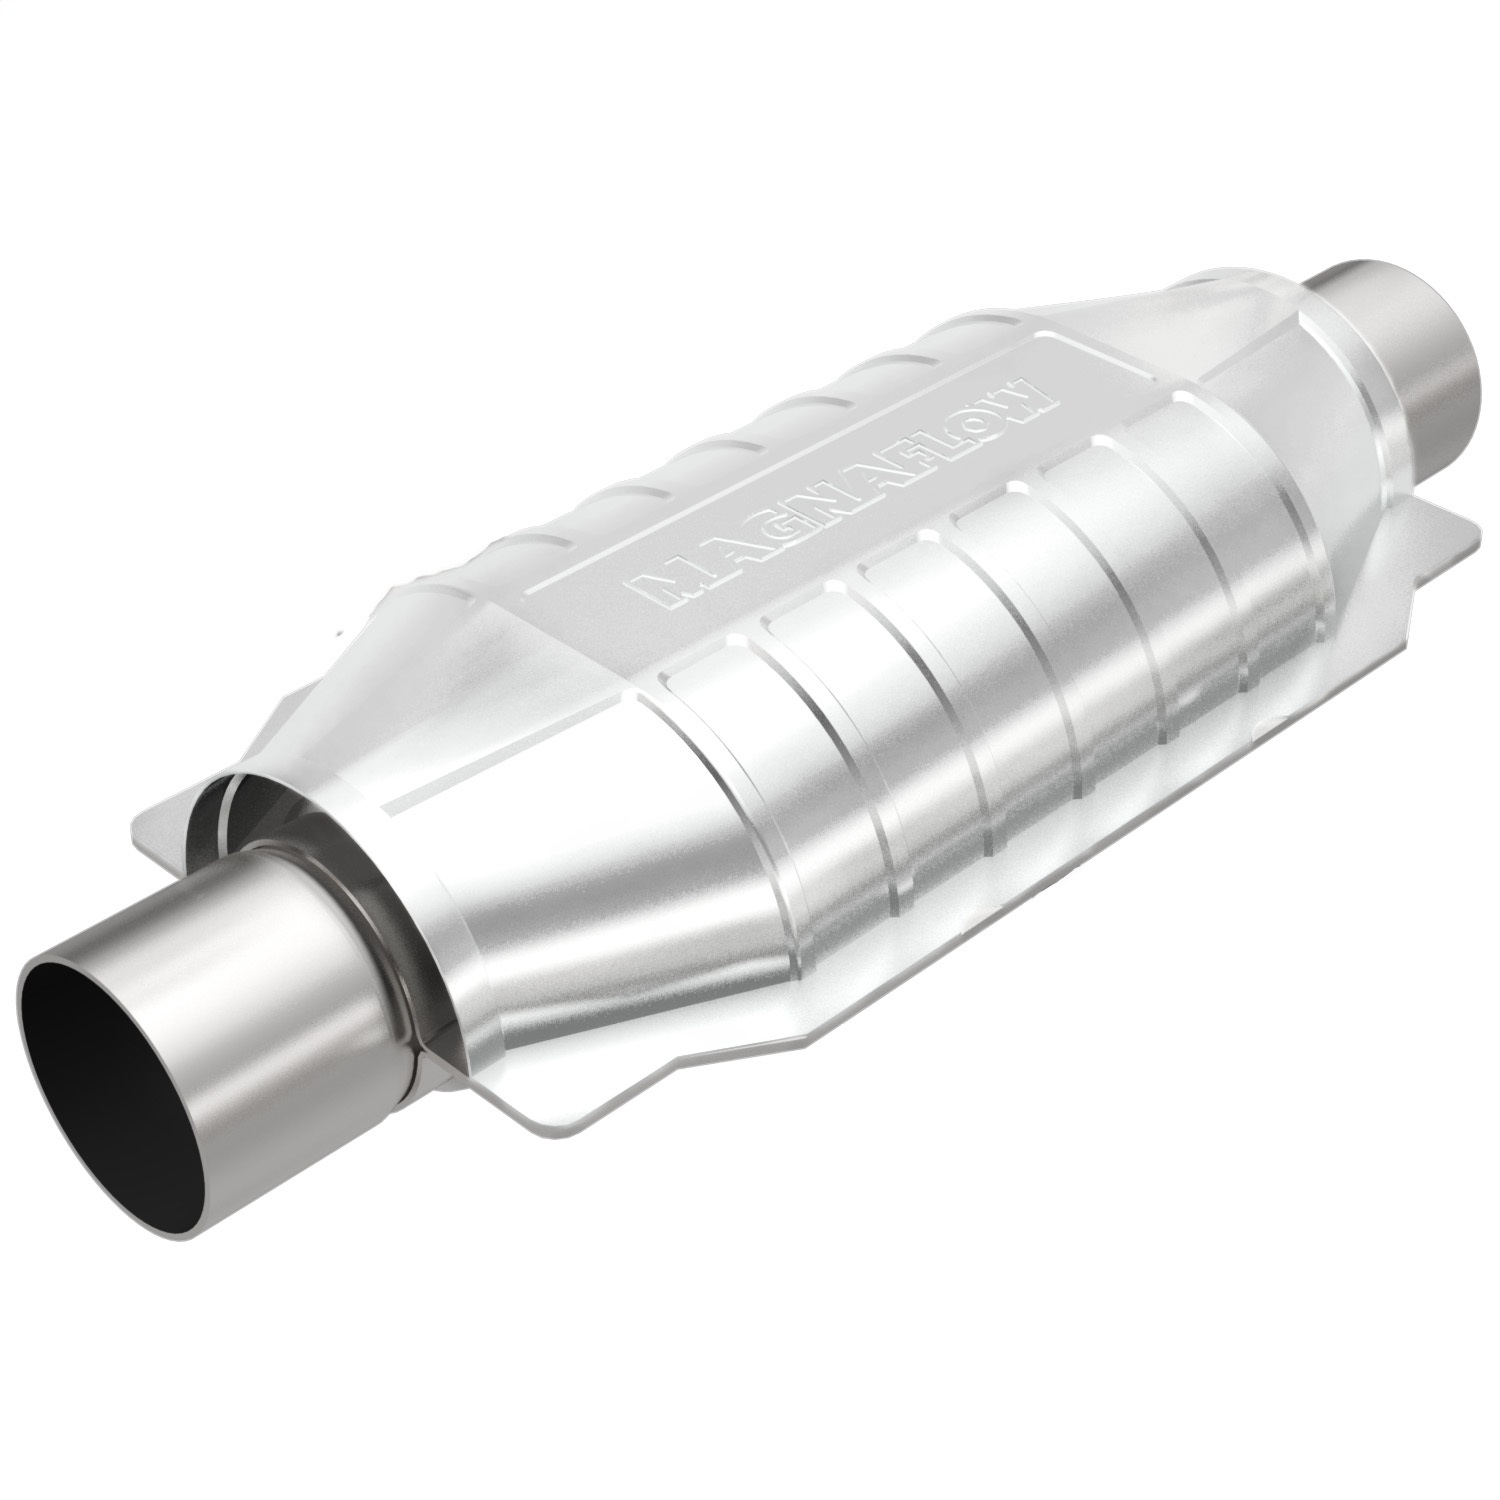 MagnaFlow 49 State Converter 94005 94000 Series OBDII Compliant Universal Catalytic Converter